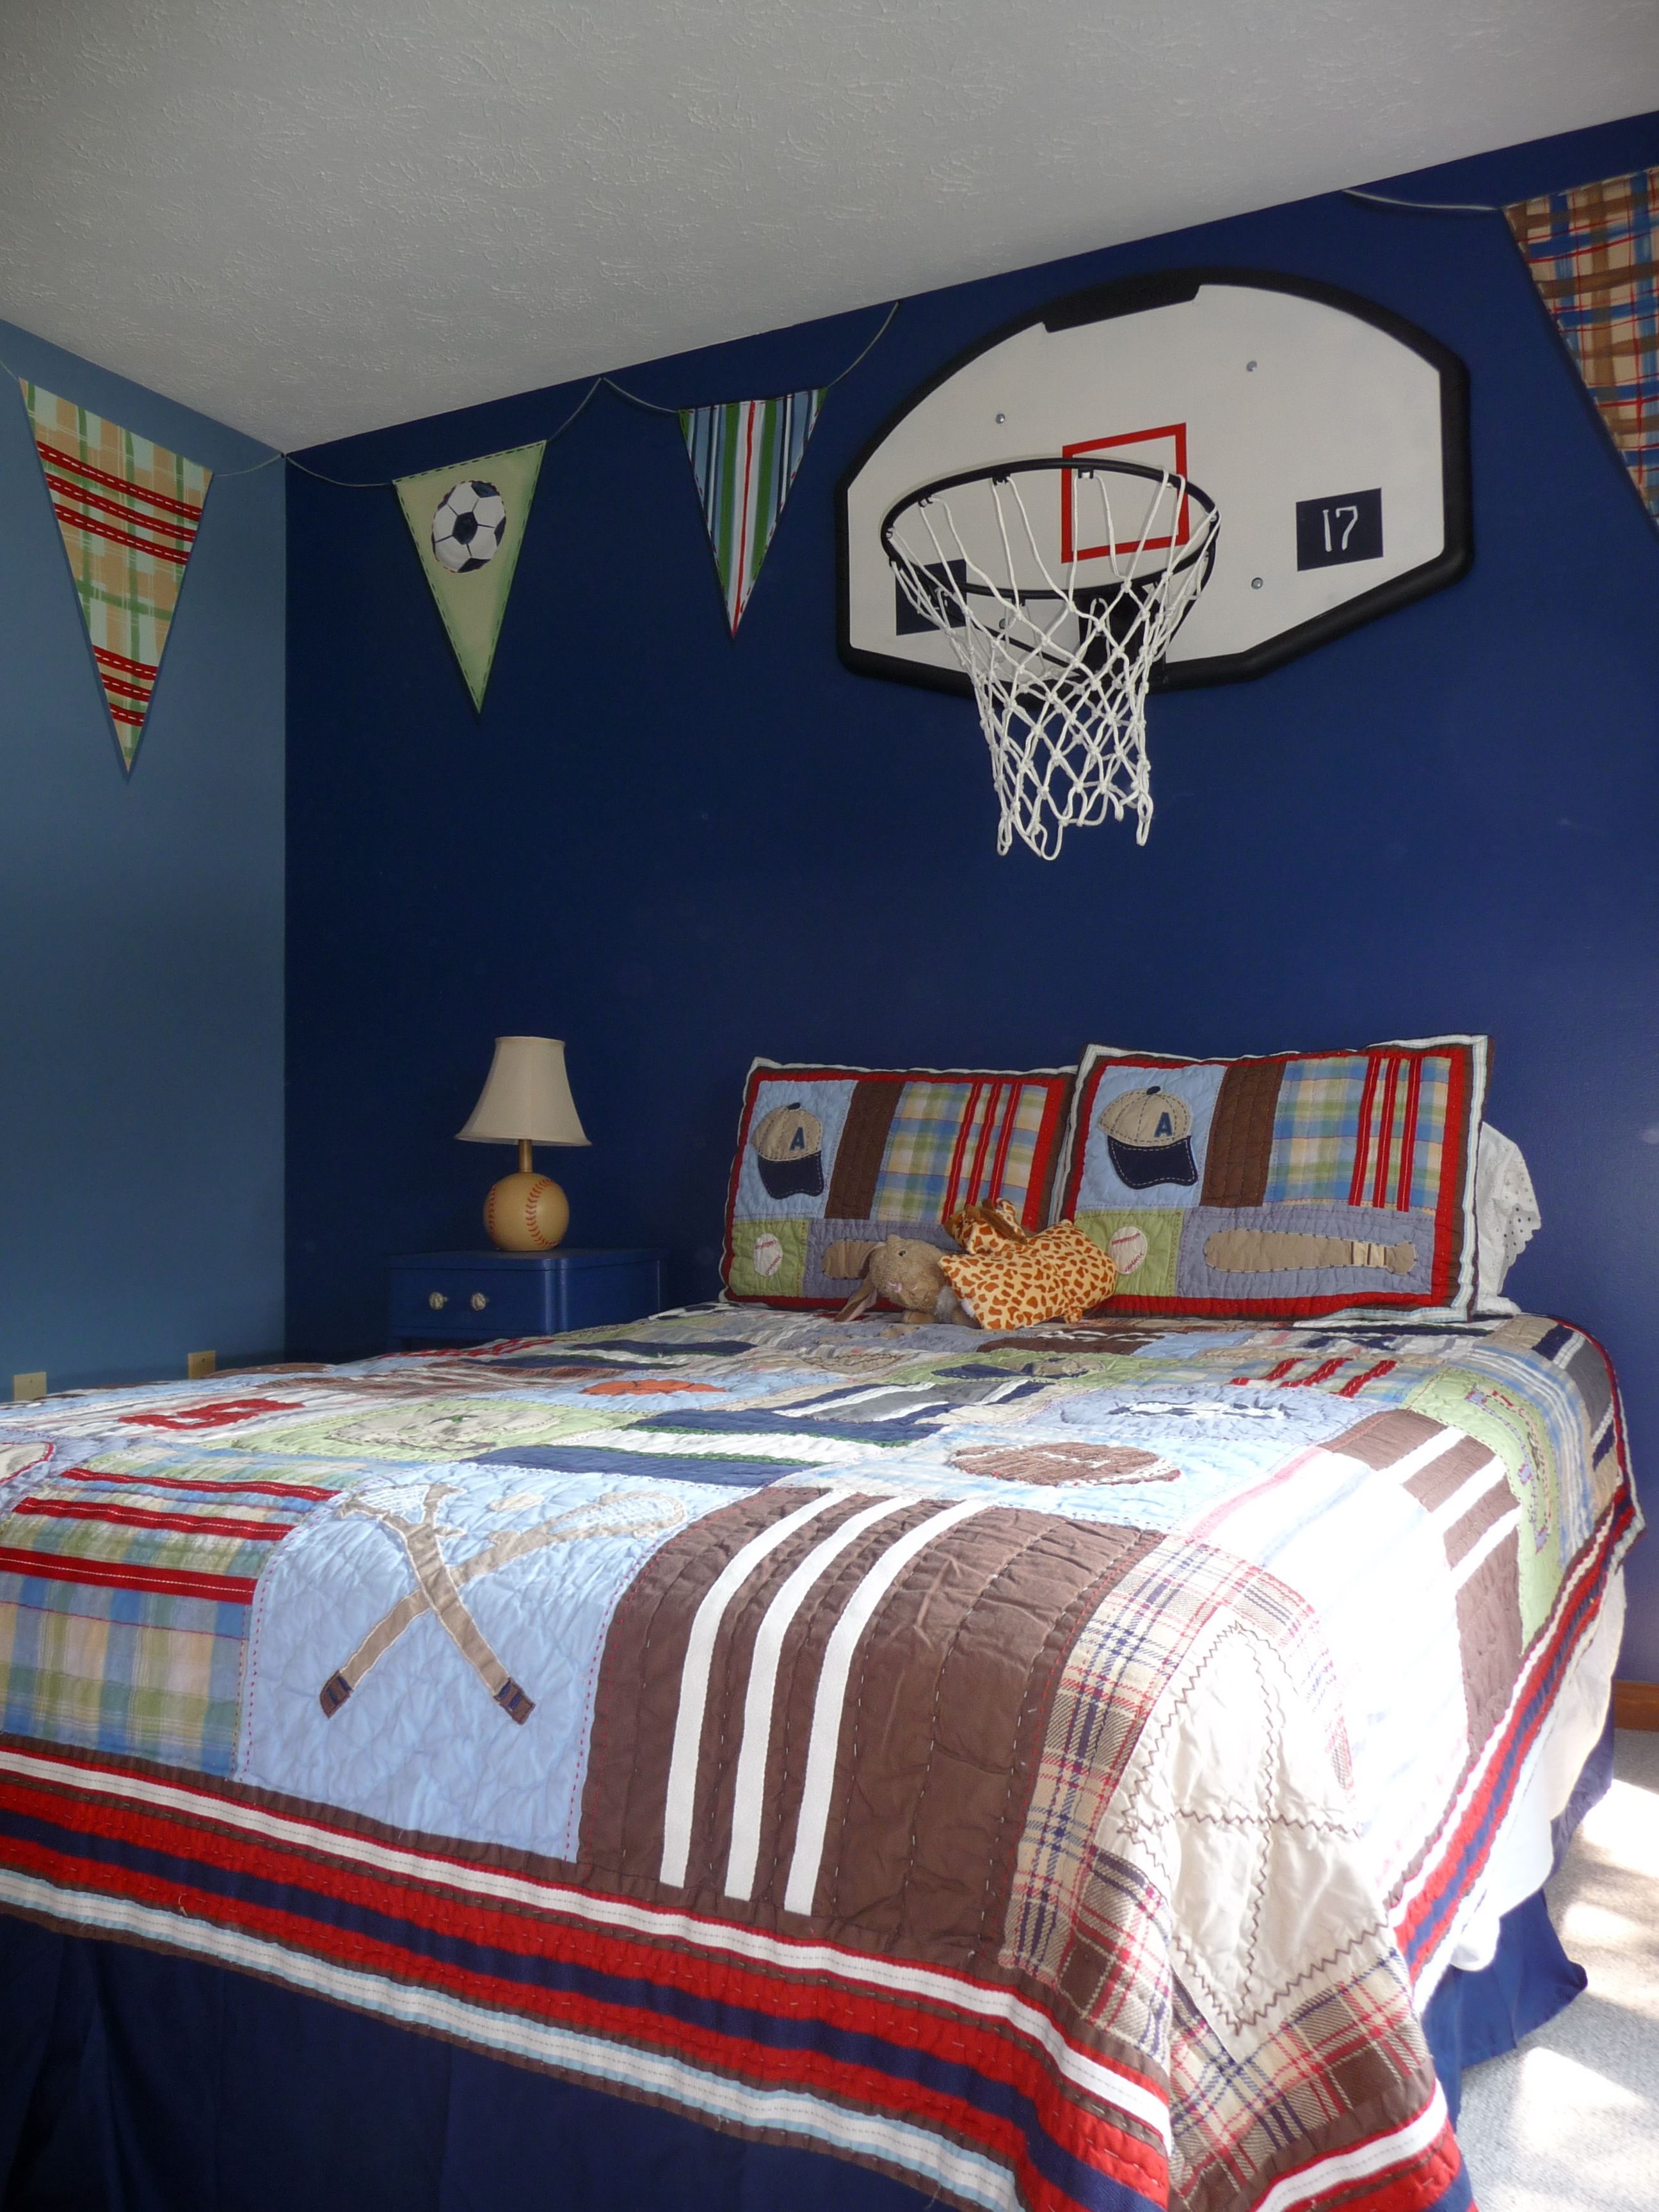 Room Basketball Goal Over The Bed